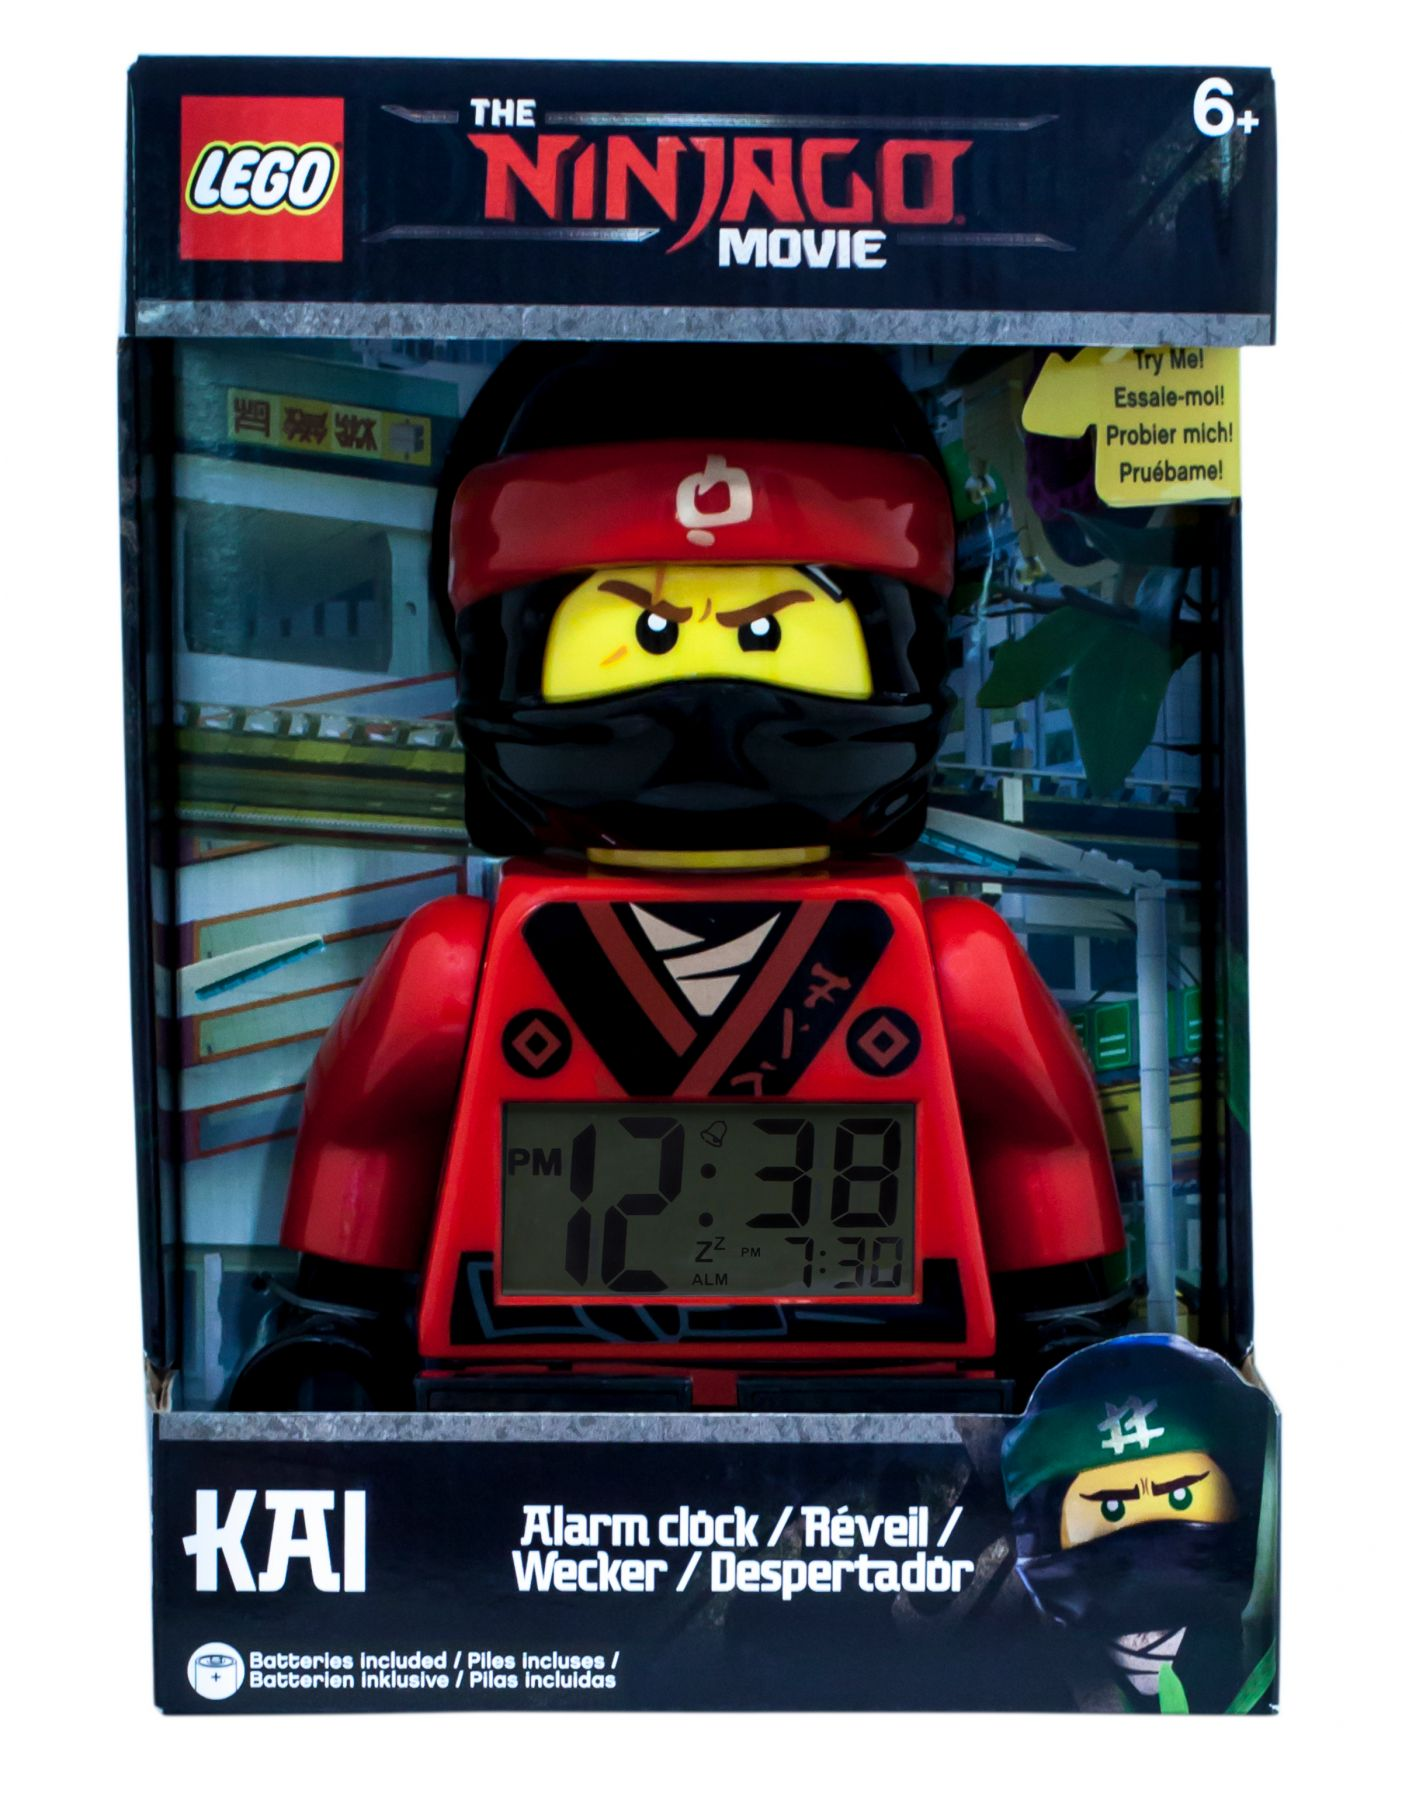 LEGO Gear 5005367 THE LEGO® NINJAGO® MOVIE™ Kai Minifigur-Wecker LEGO_5005367_alt1.jpg